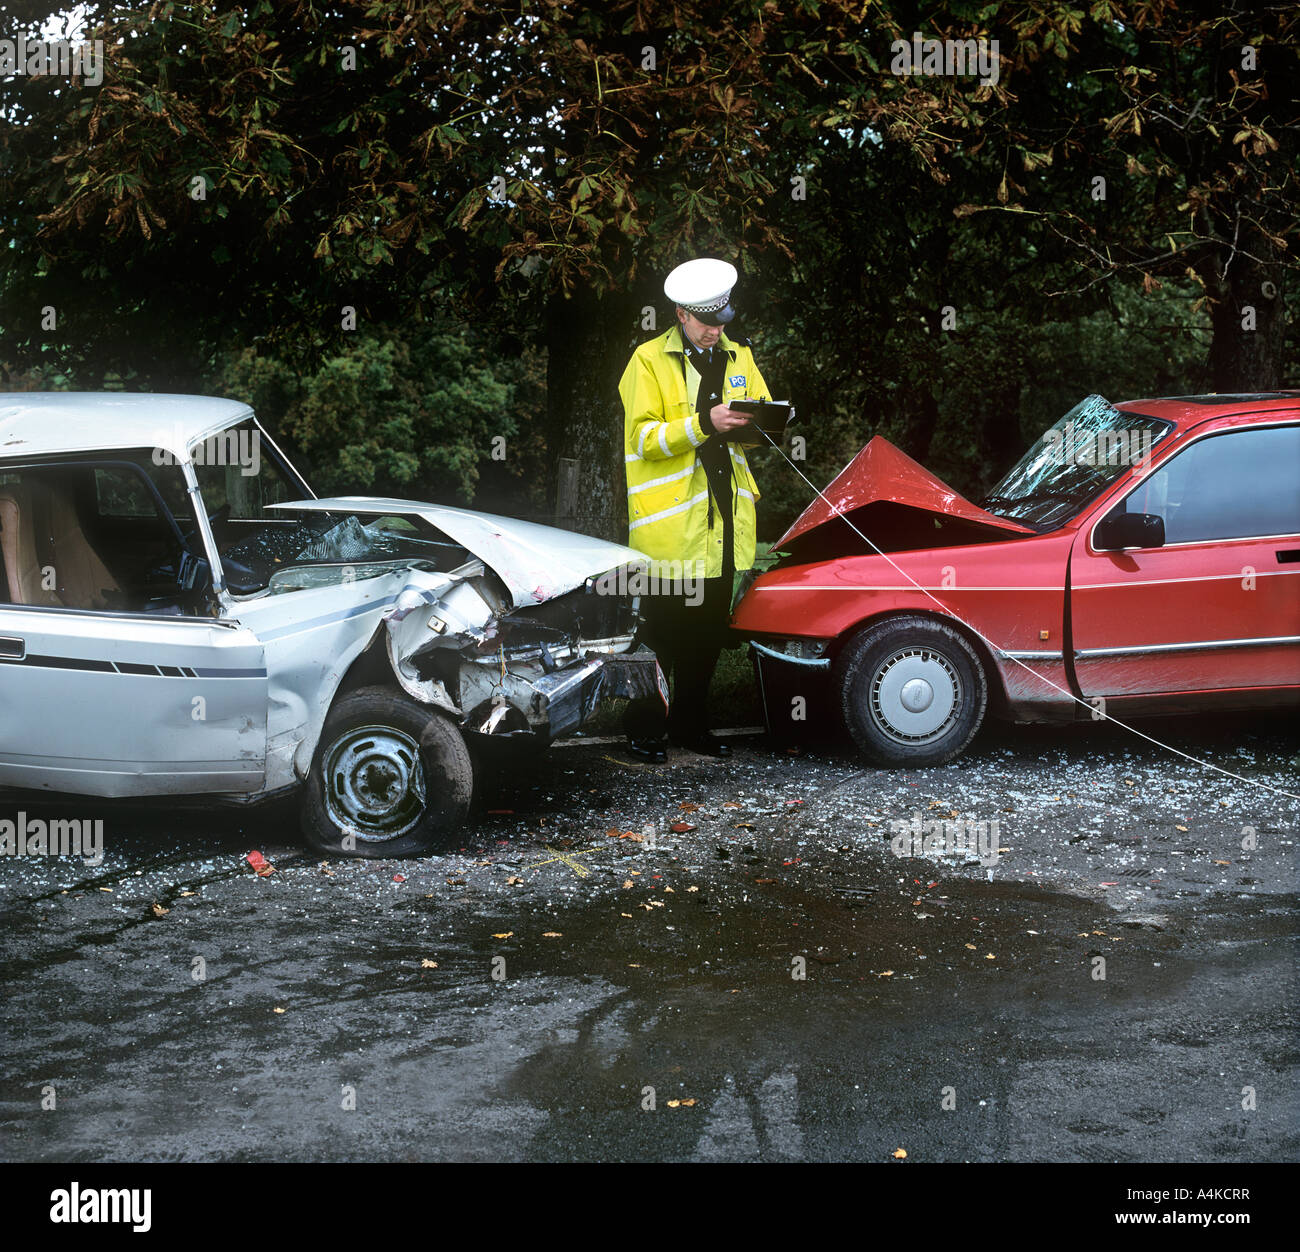 A policement taking measurements at the scene of a road accident. Stock Photo